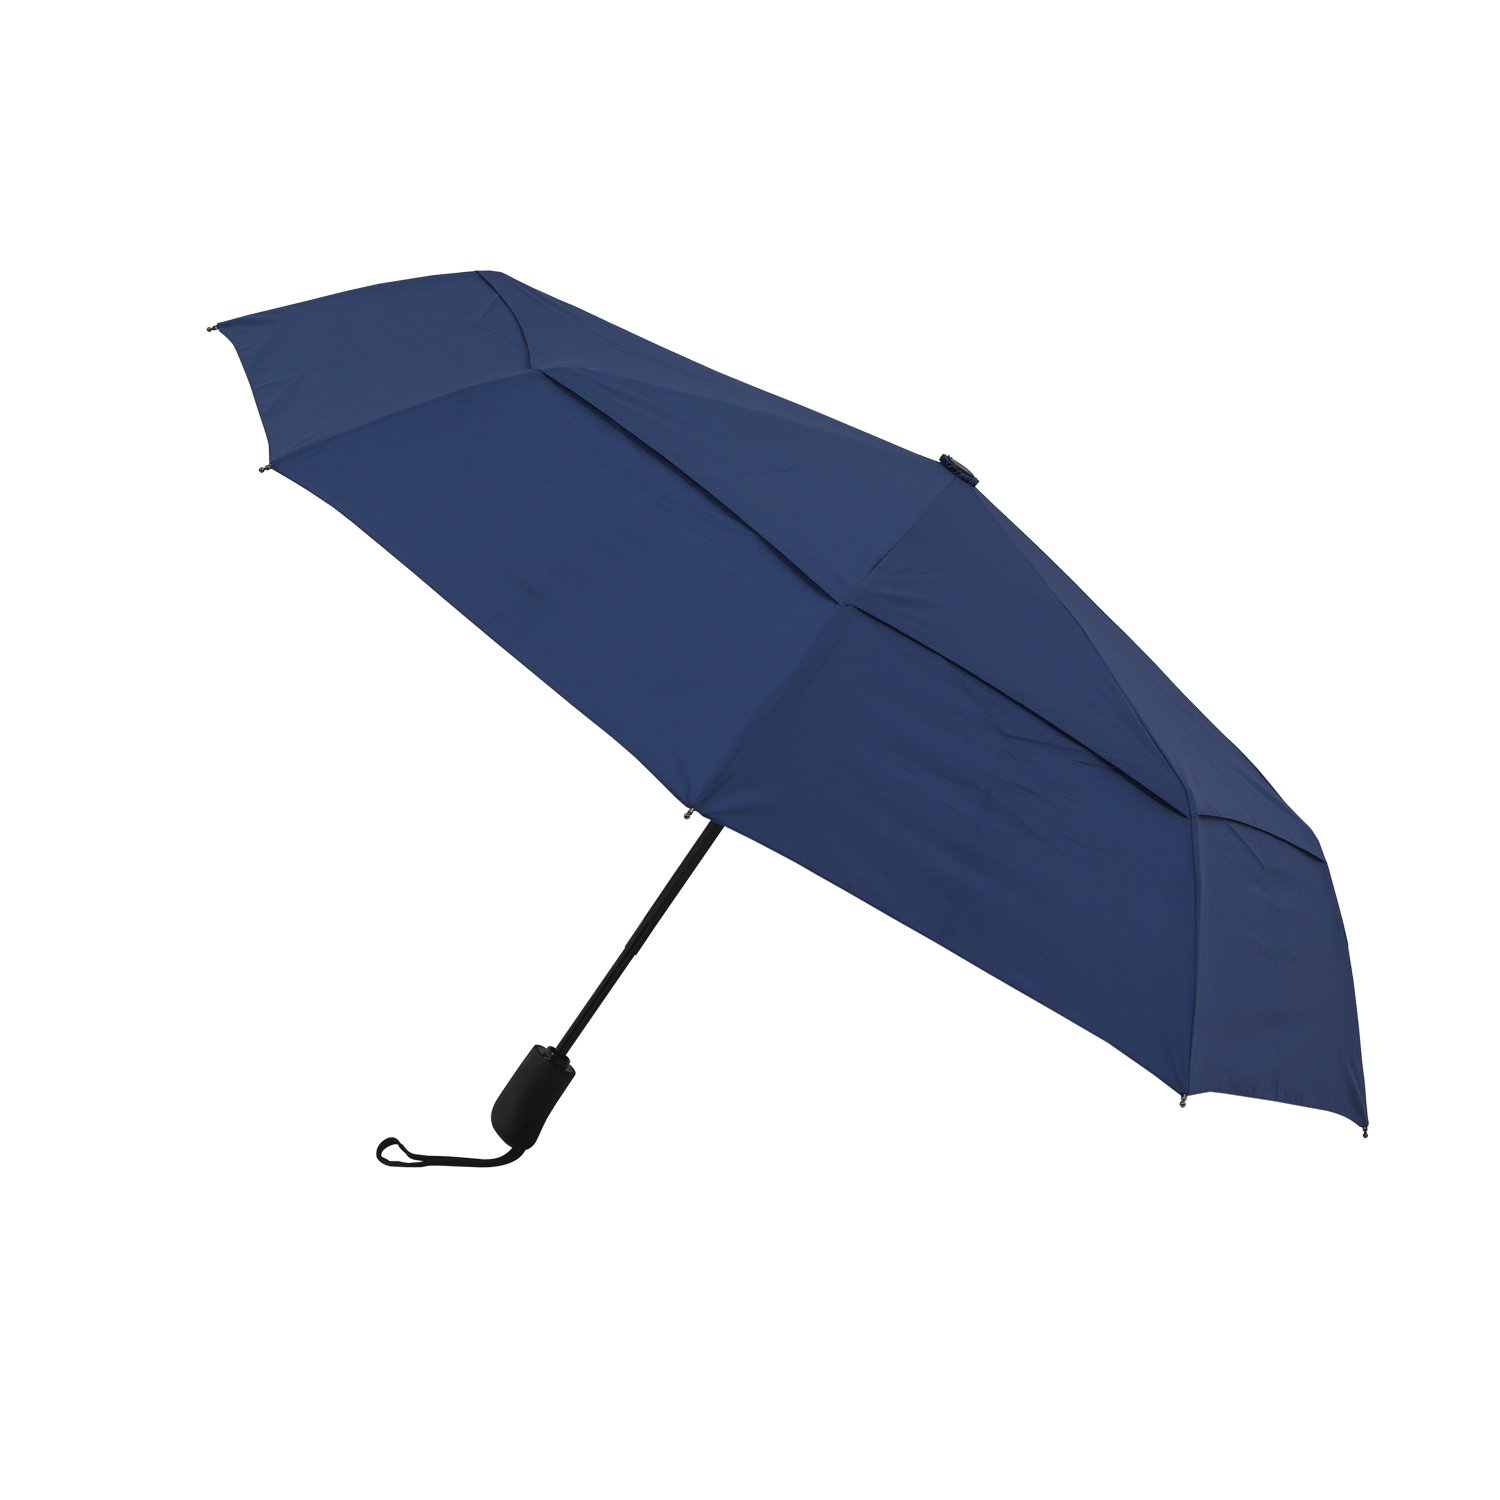 Amazon Brand Solimo Umbrella